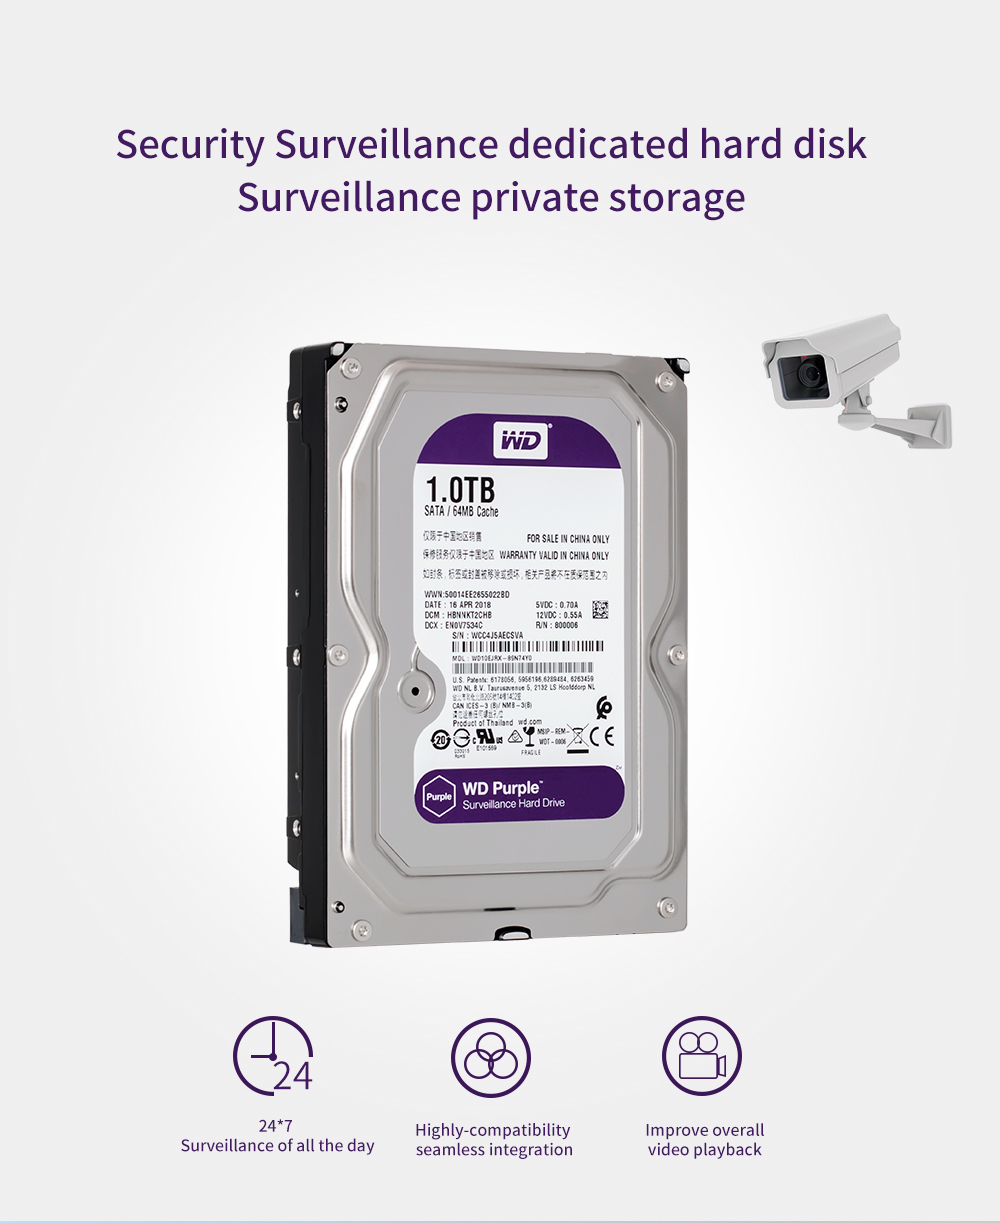 WD Purple 1TB Hard Drive Disk for Security System HDD 3.5 inch SATA DVR CCTV PC Surveillance